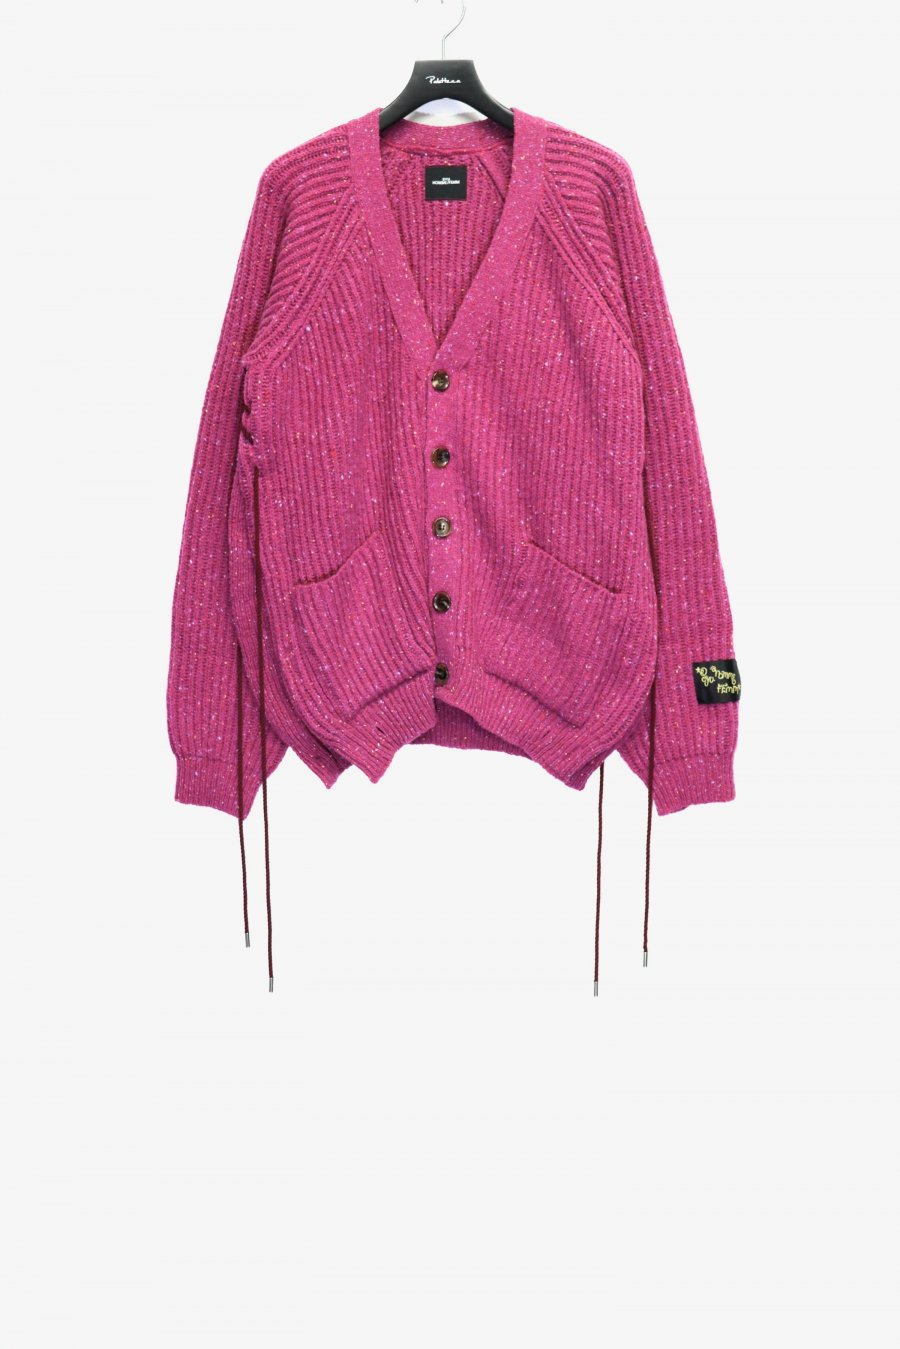 SYU.HOMME/FEMM  Laceup Knit cardigan(PINK)<img class='new_mark_img2' src='https://img.shop-pro.jp/img/new/icons15.gif' style='border:none;display:inline;margin:0px;padding:0px;width:auto;' />